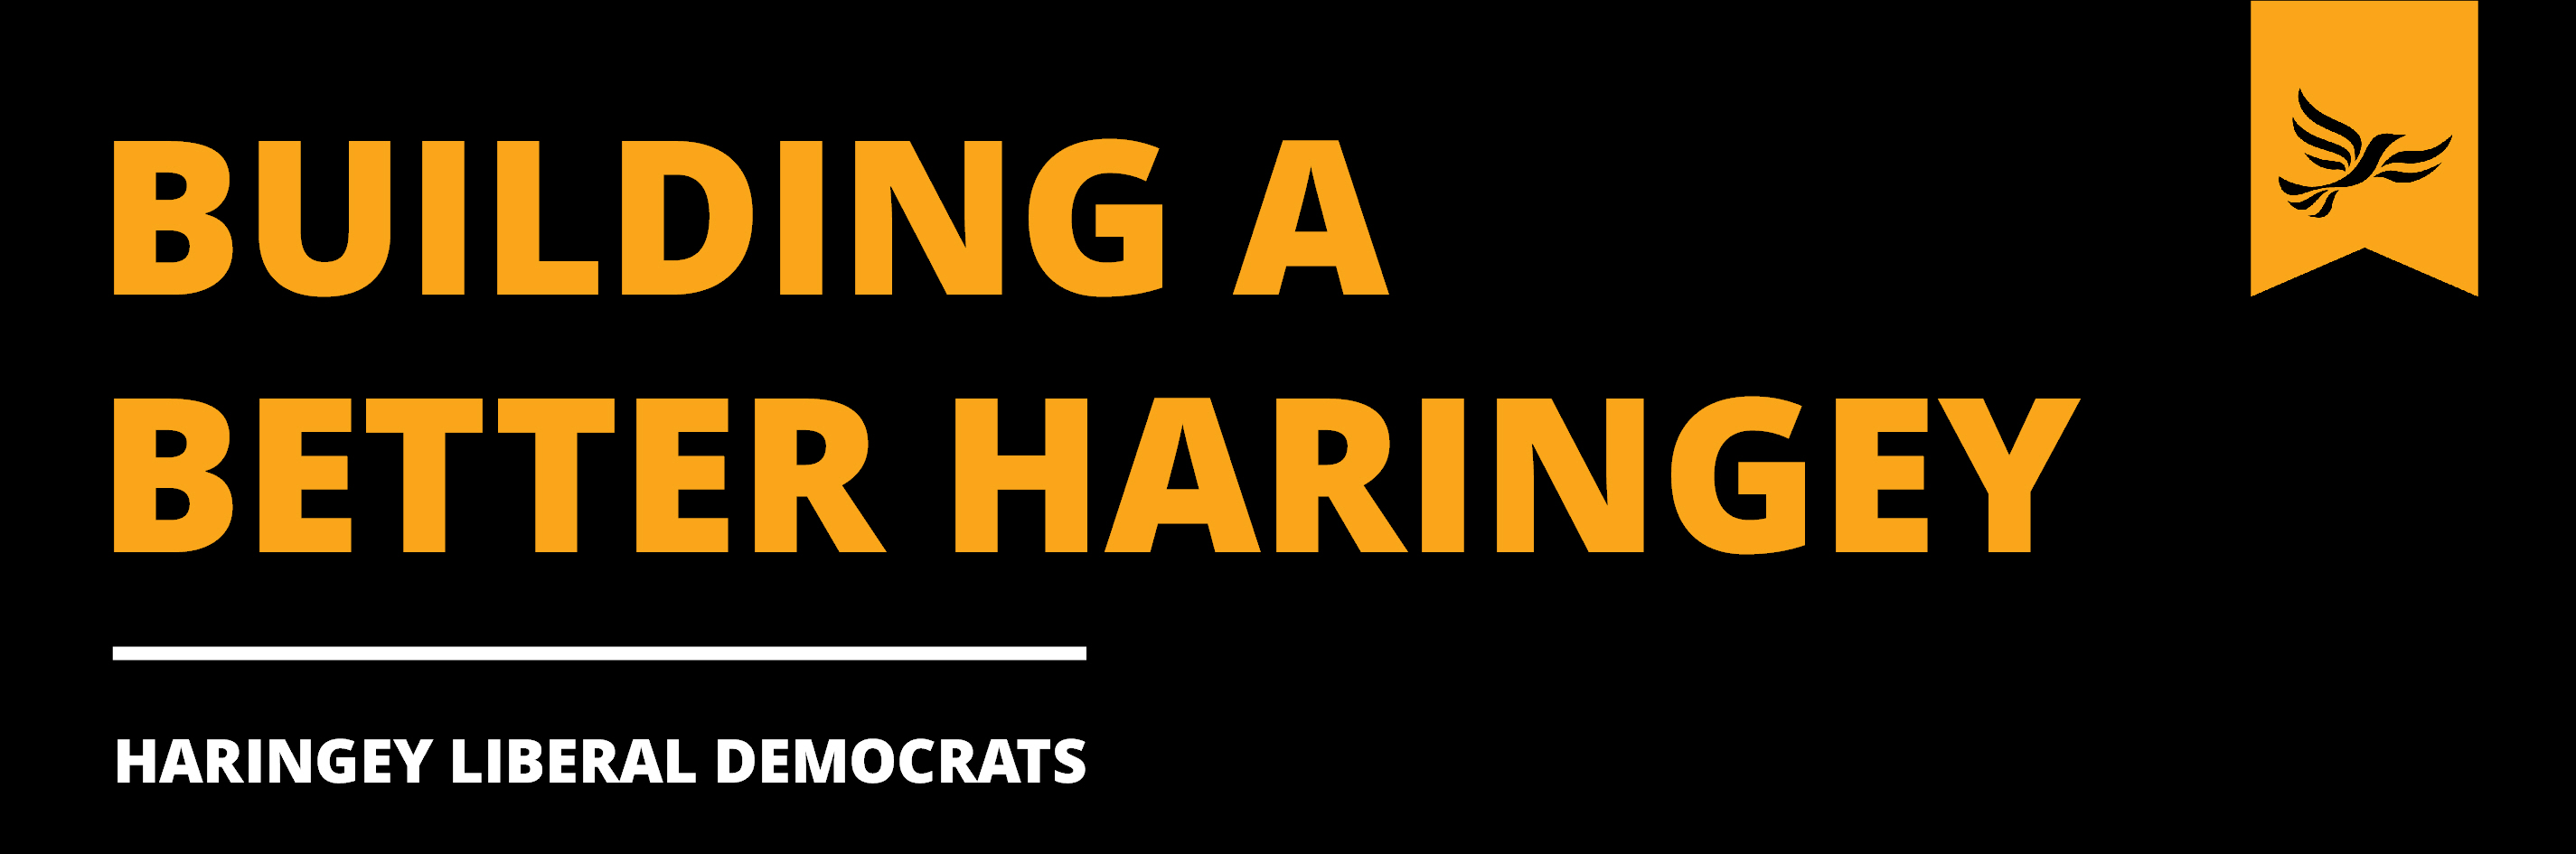 Building a better Haringey - Haringey Liberal Democrats